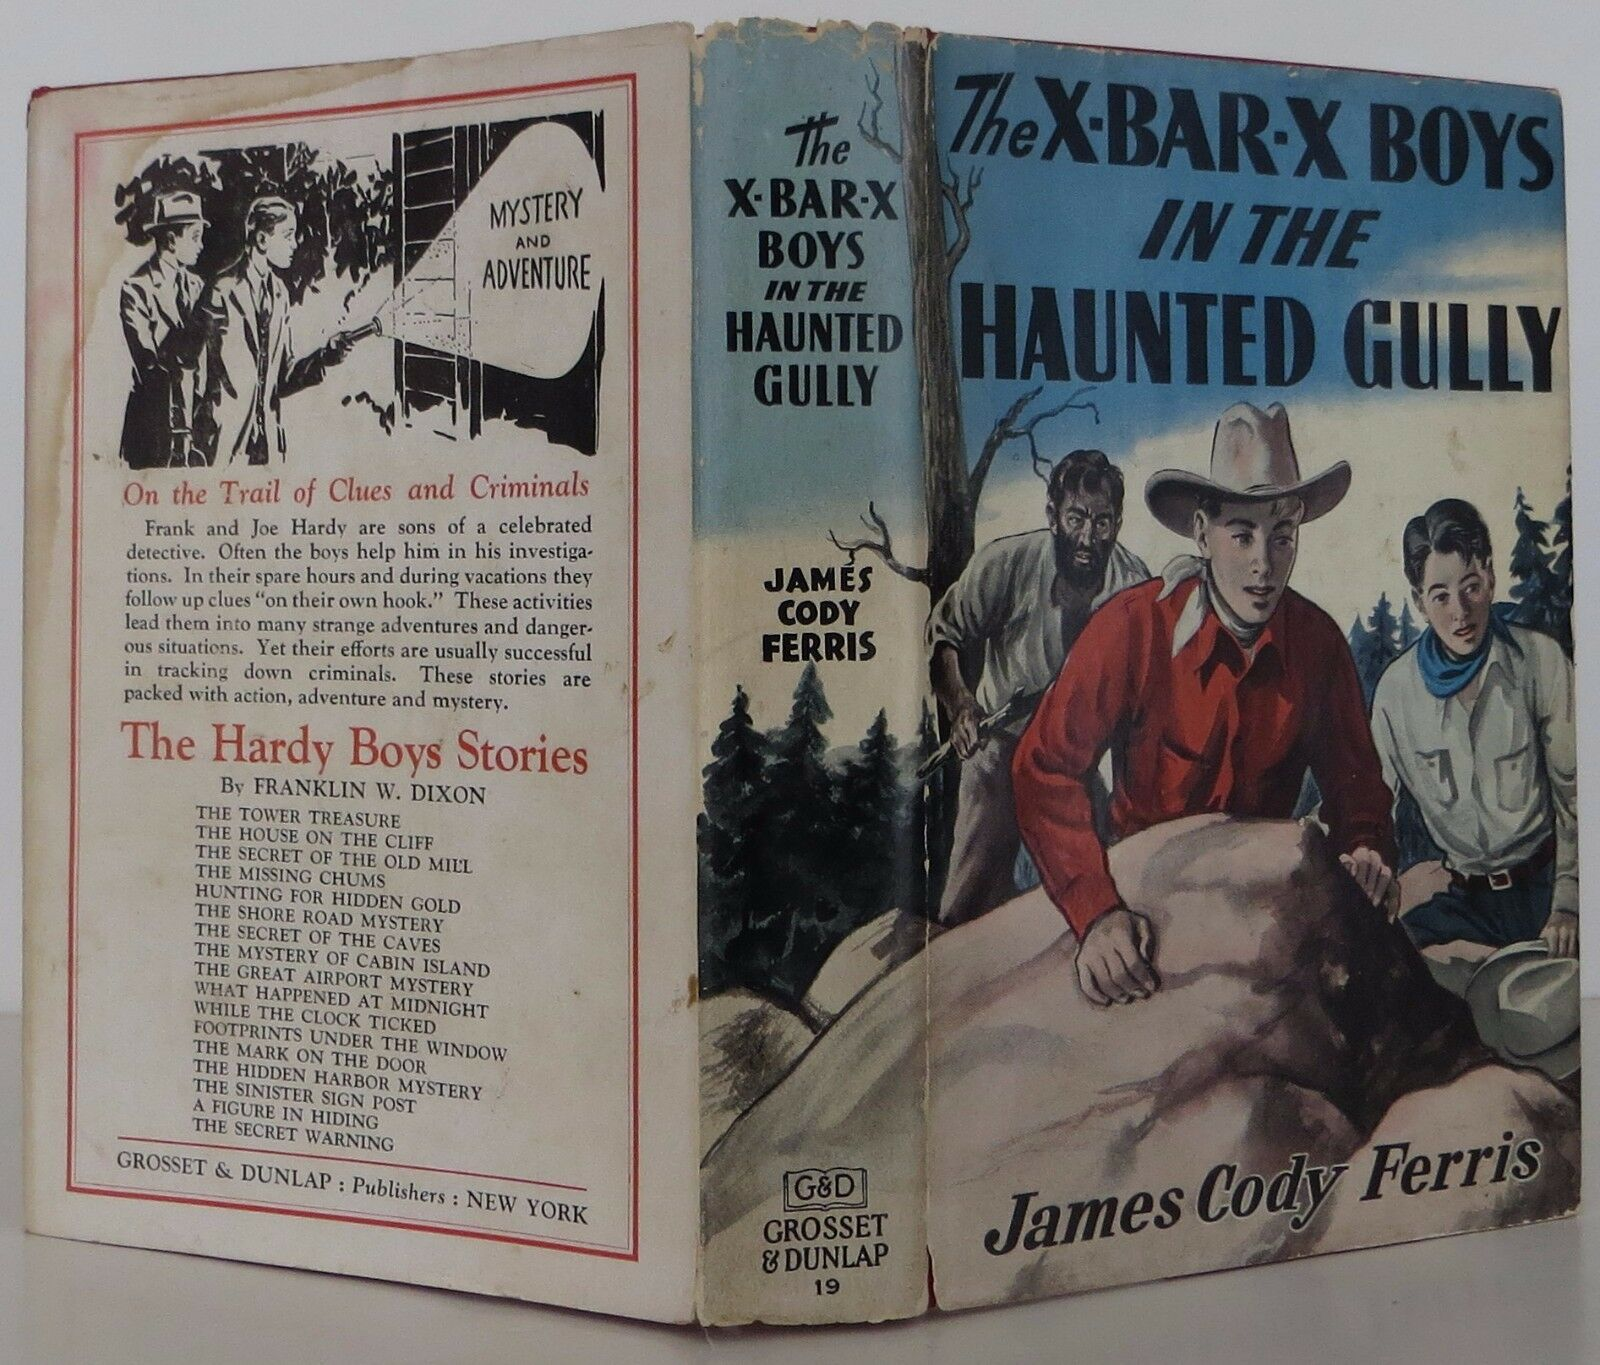 JAMES CODY FERRIS The X Bar X Boys in the Haunted Gully